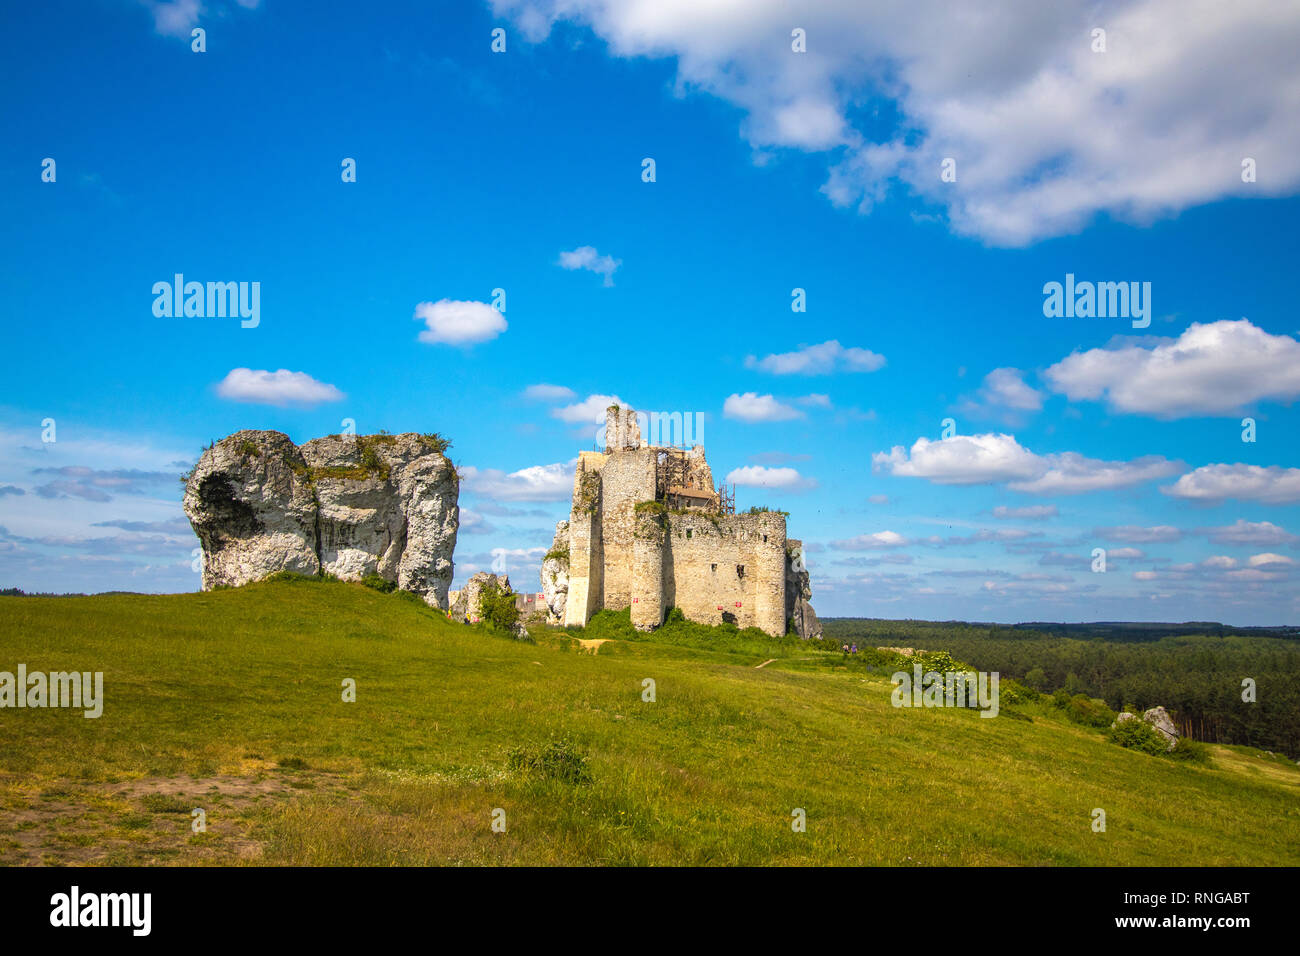 Picturesque Ruins of castle Mirow Stock Photo